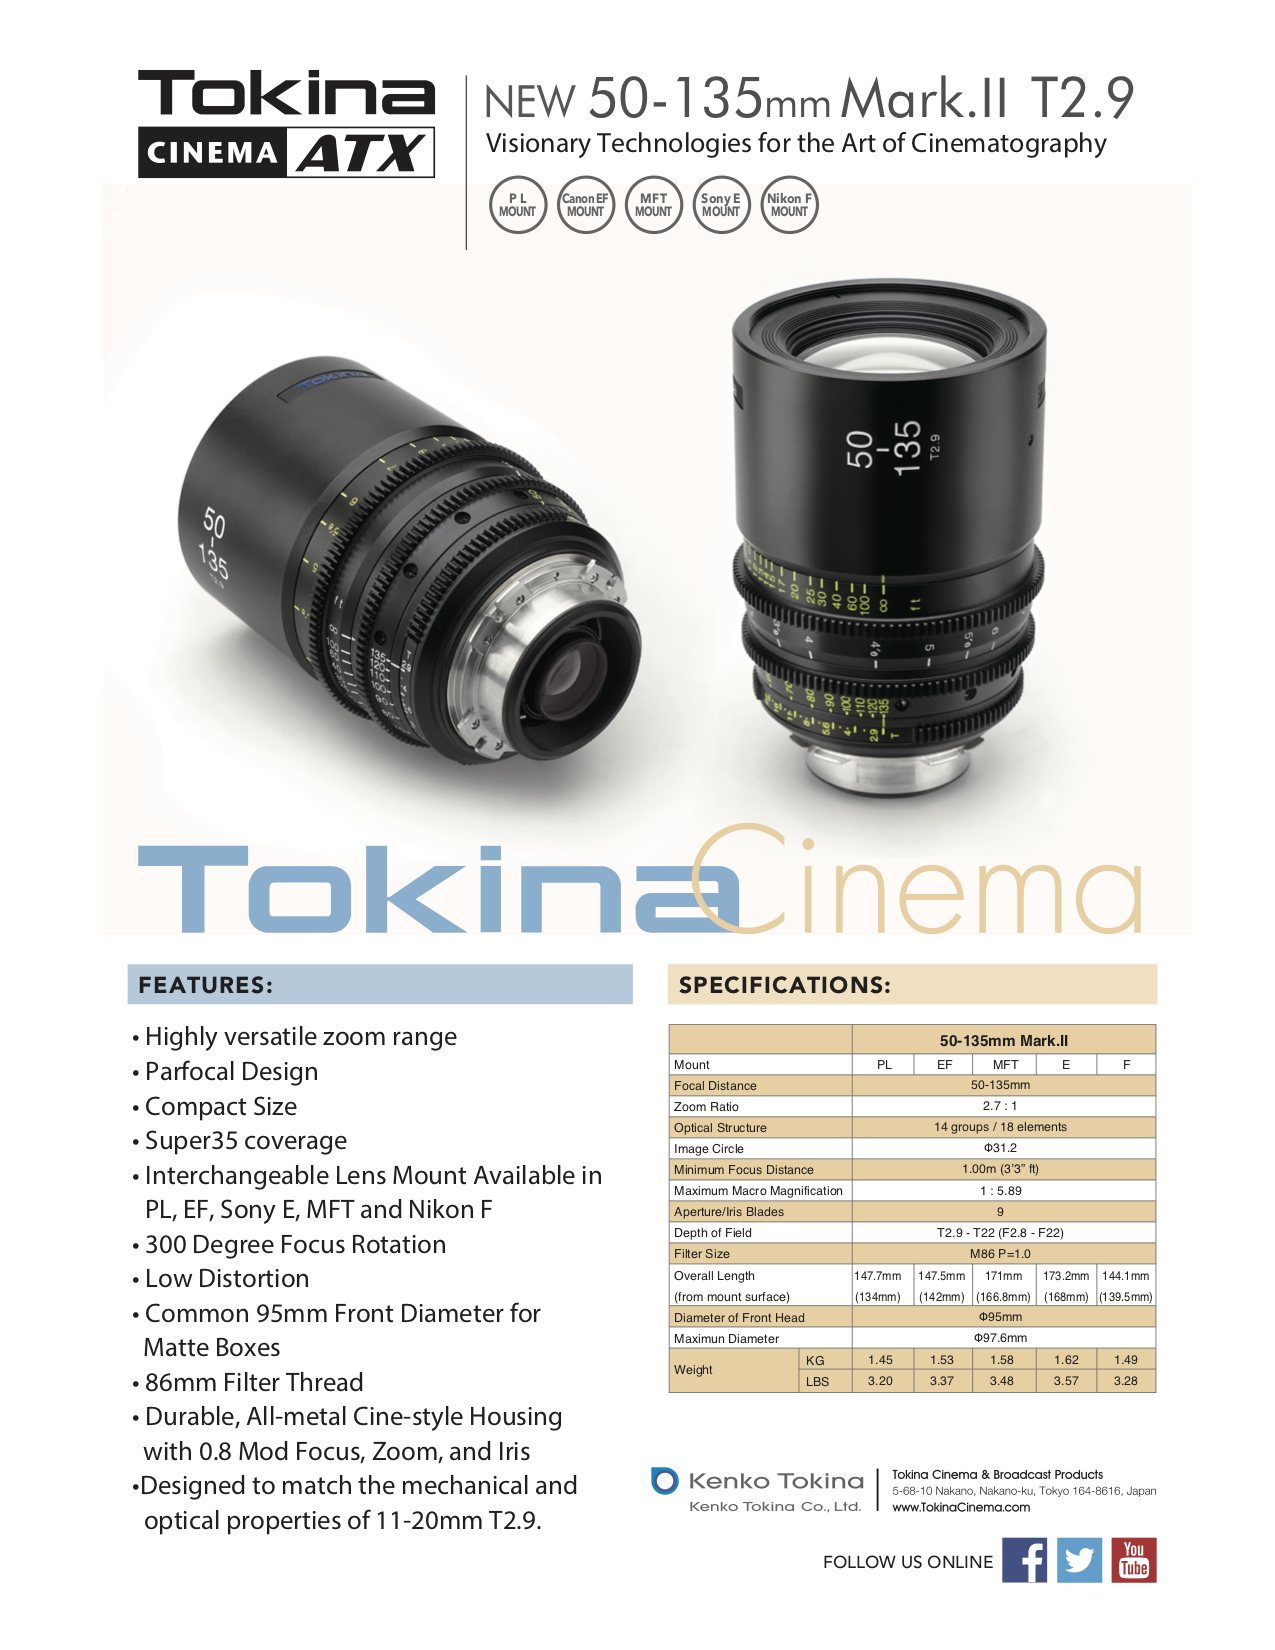 50-135mm T2.9 MKII Spec Sheet copy.jpg